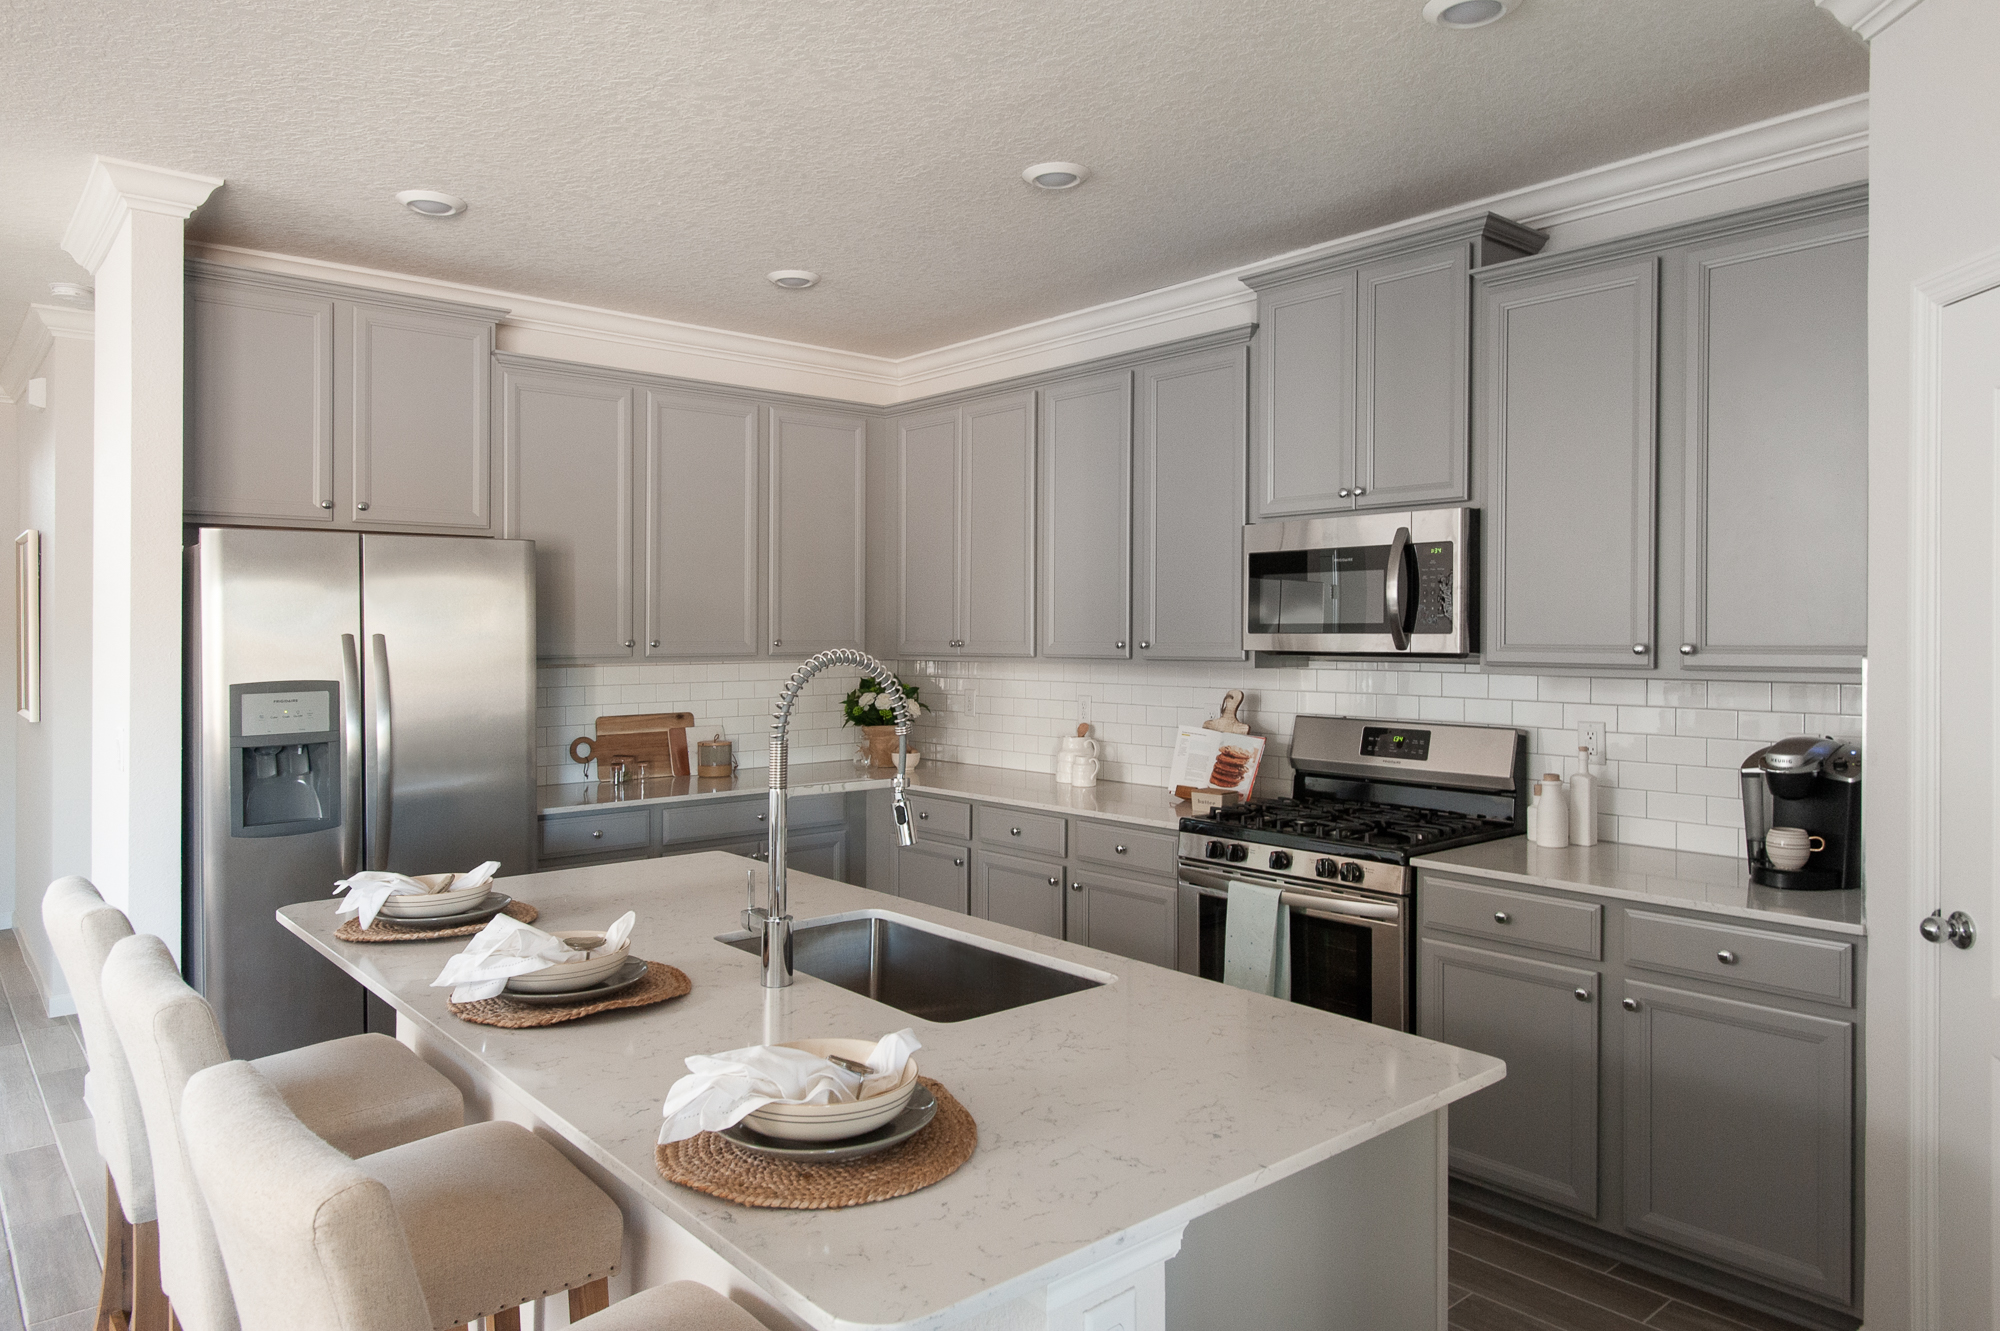 Micamy_Interior Designer_Design_Interior_Model_Merchandising_Kitchen_Grey_Cabinets_Forty West_Lennar_Place Setting_SubwayTile_Farmhouse.jpg